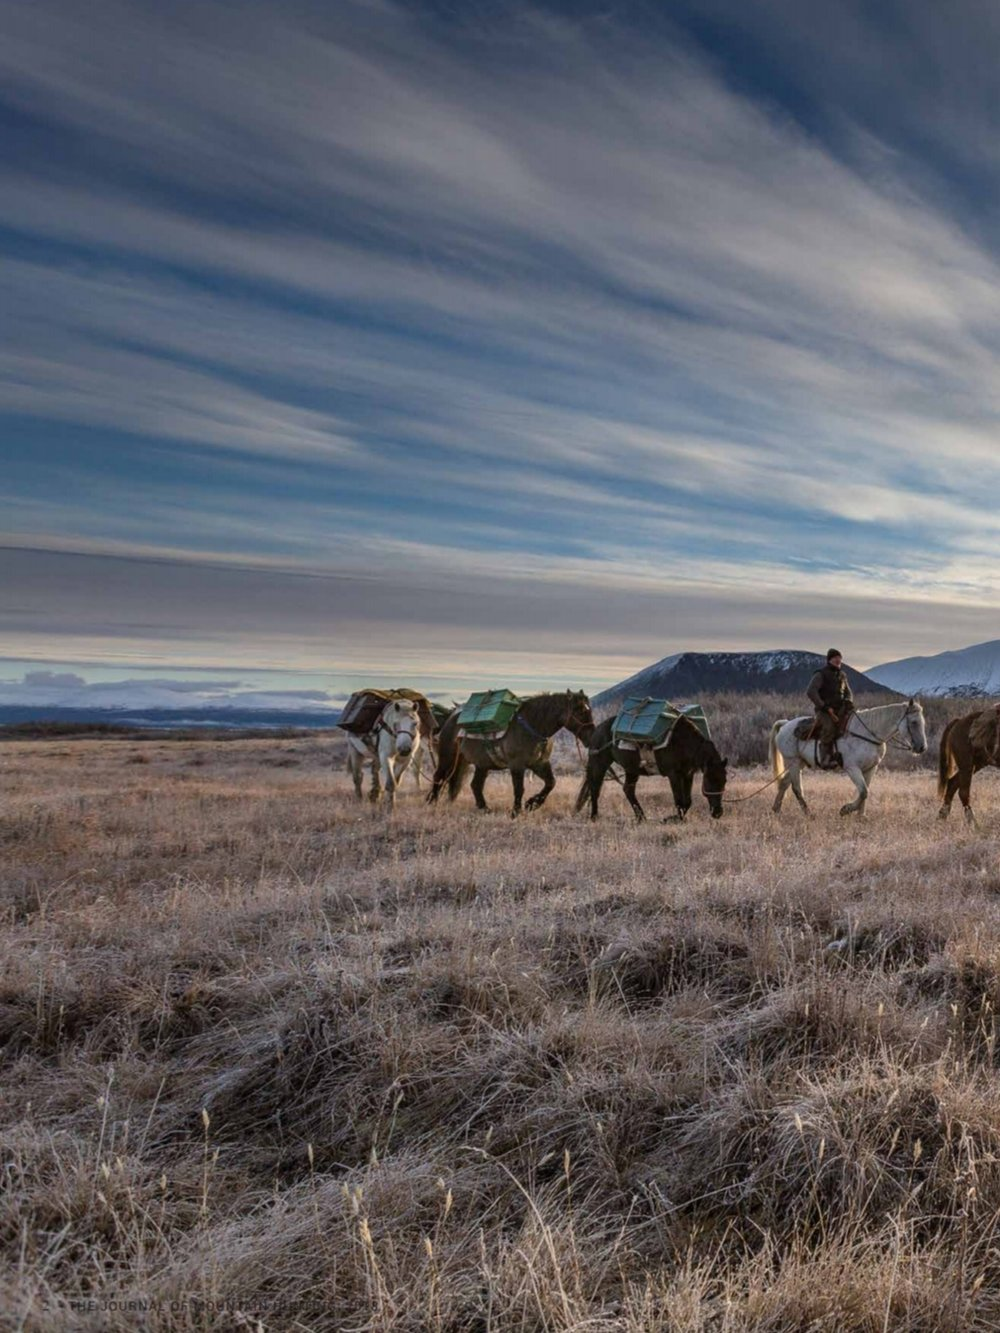 Backcountry on horseback